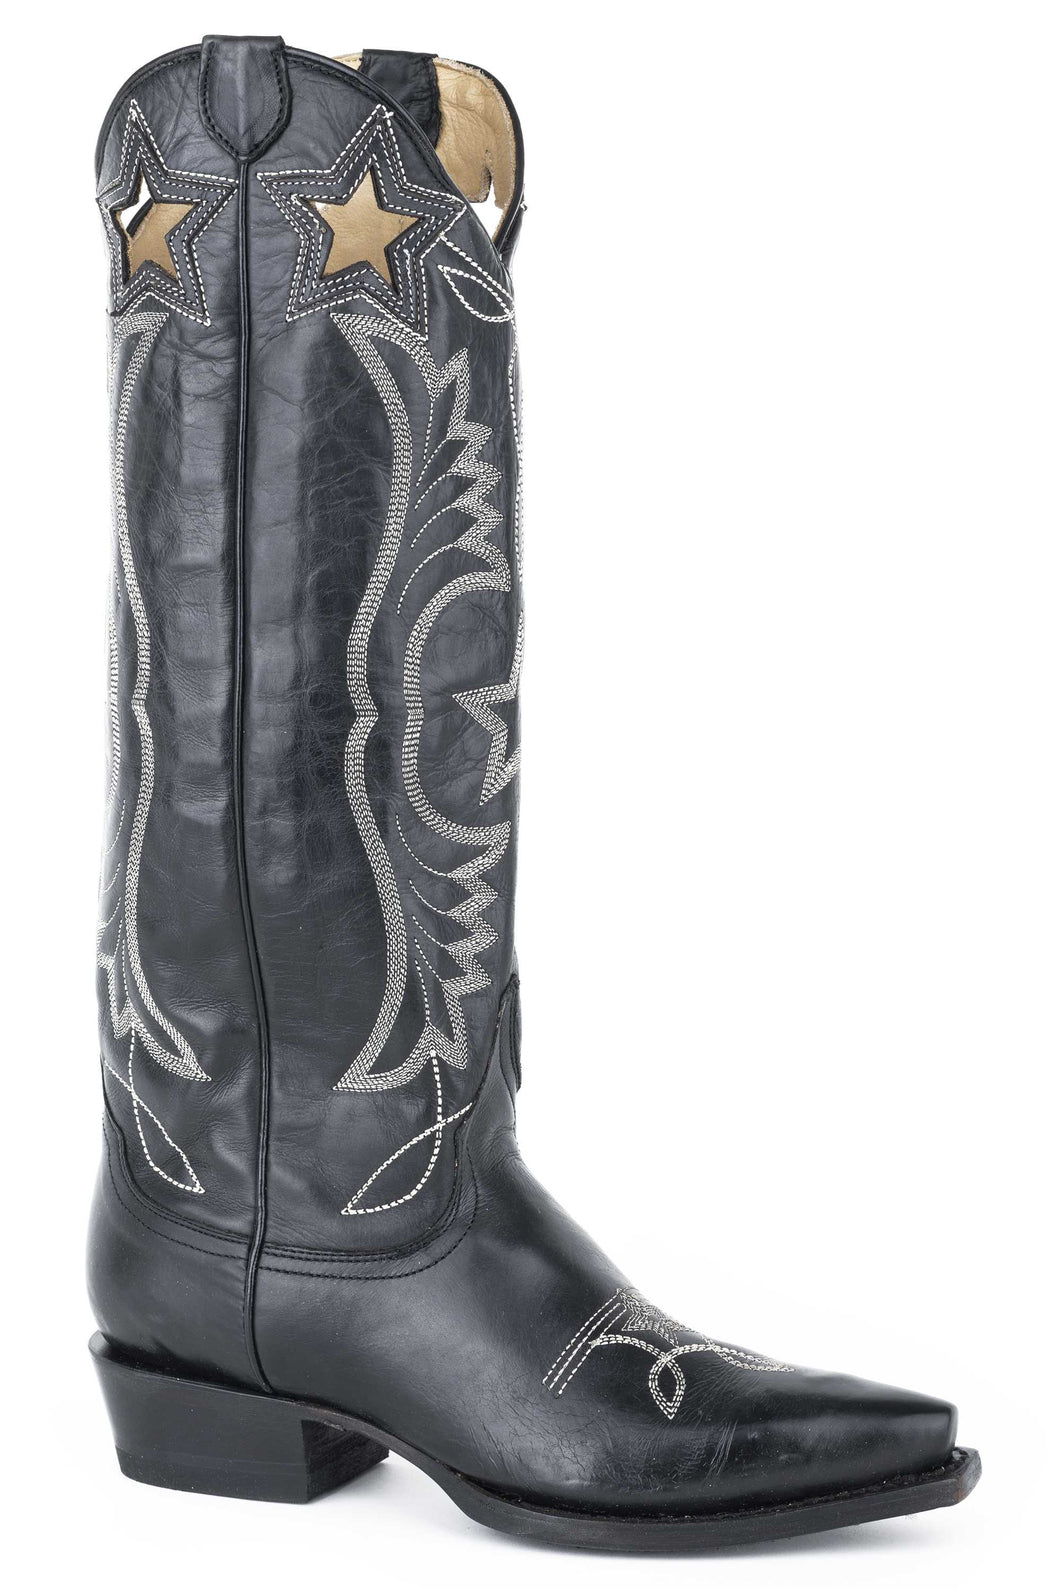 Celeste Boot Womens Boots Black Oiled Goat Vamp And 15